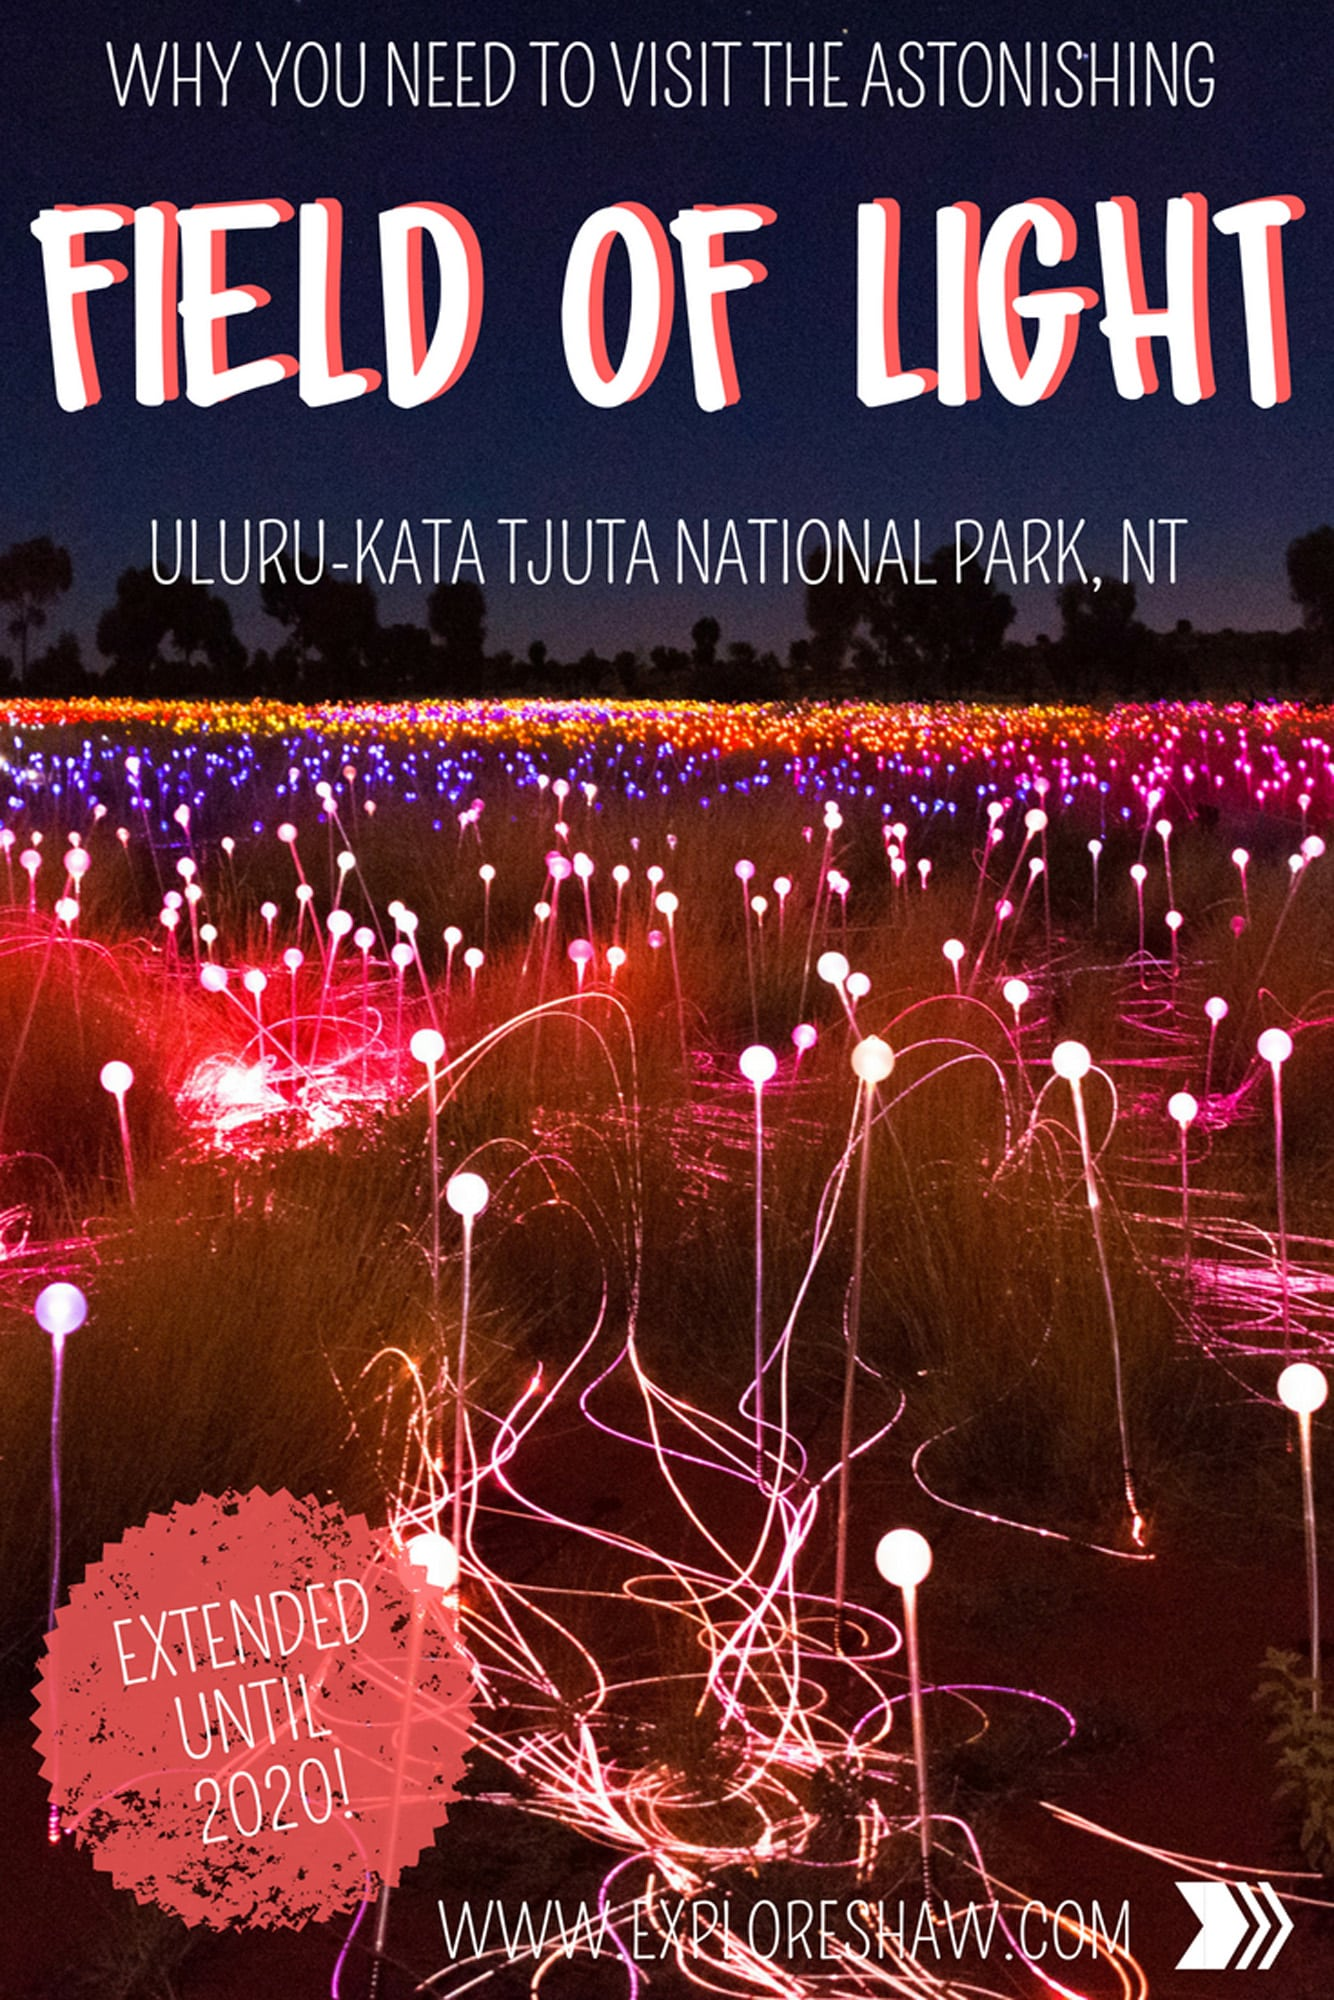 WHY YOU NEED TO VISIT THE FIELD OF LIGHT AT ULURU